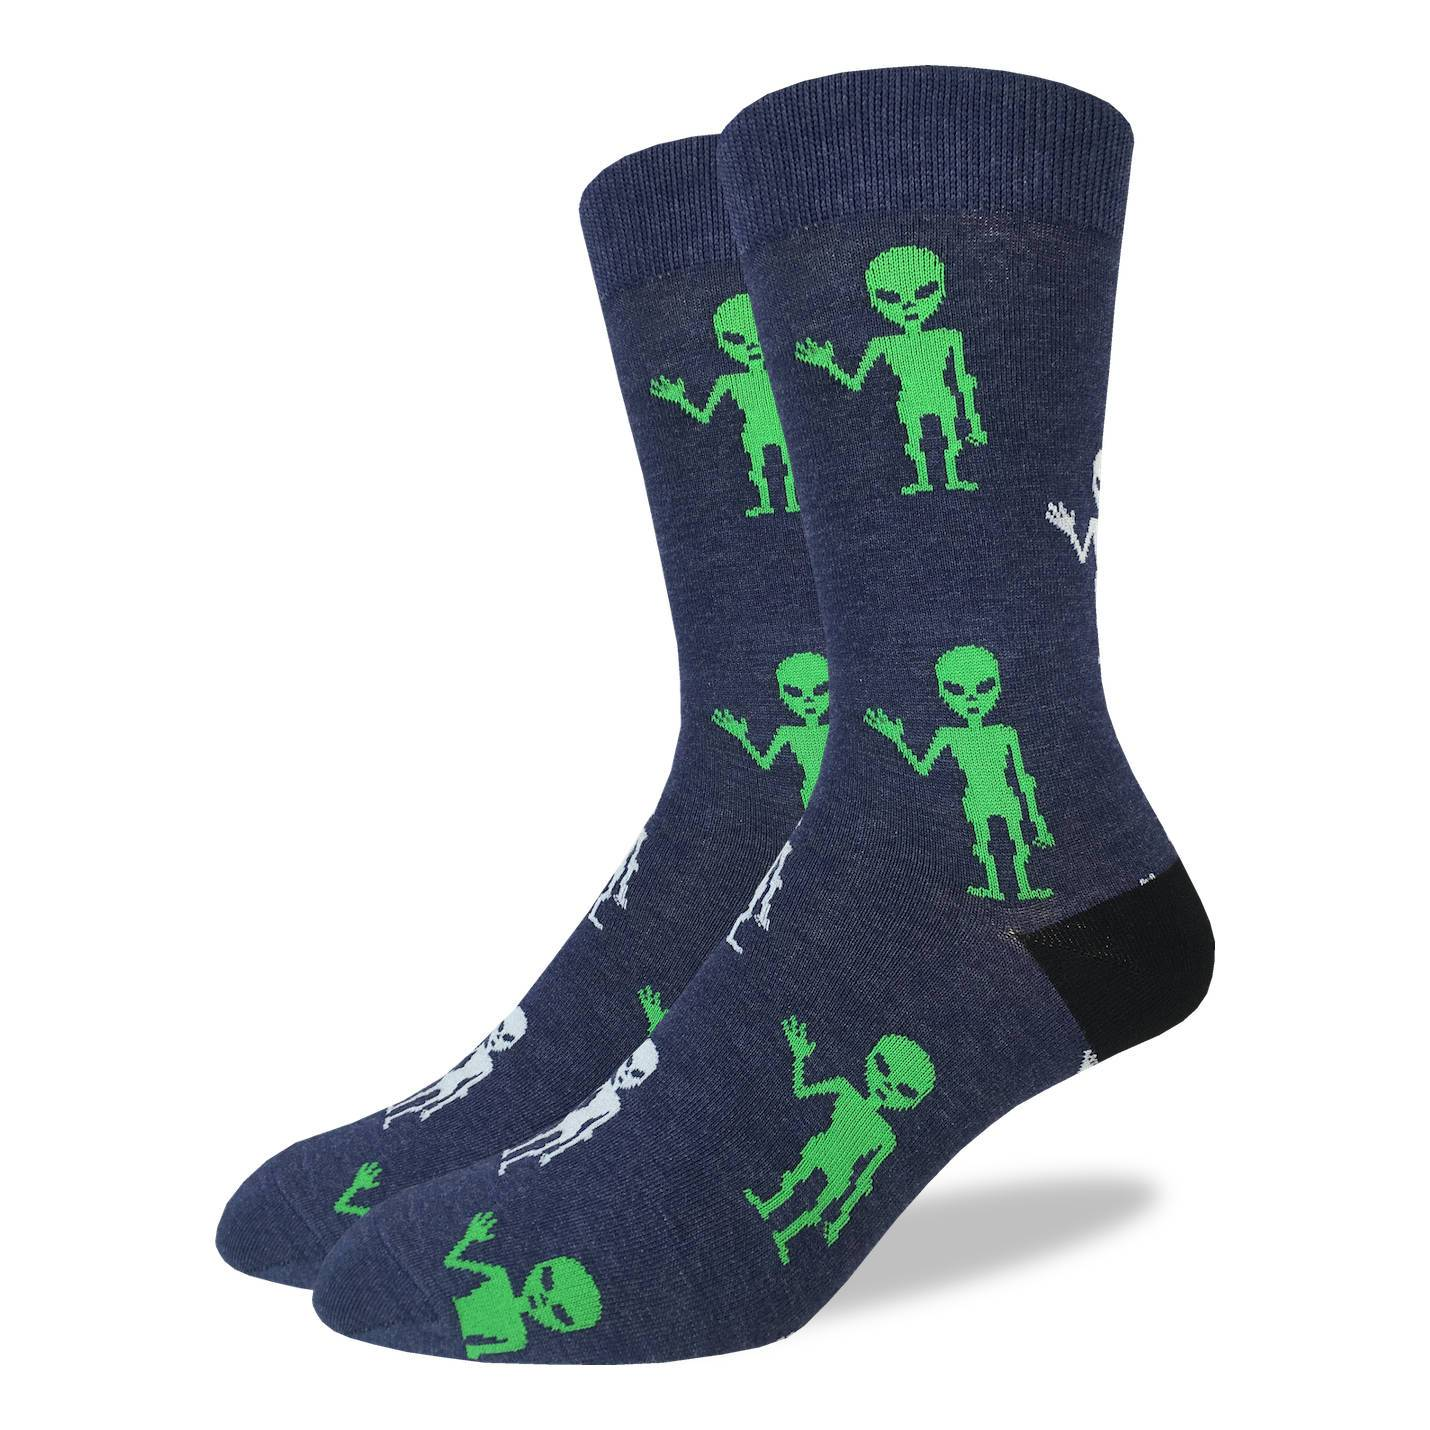 Men's Aliens Socks - Good Luck Sock